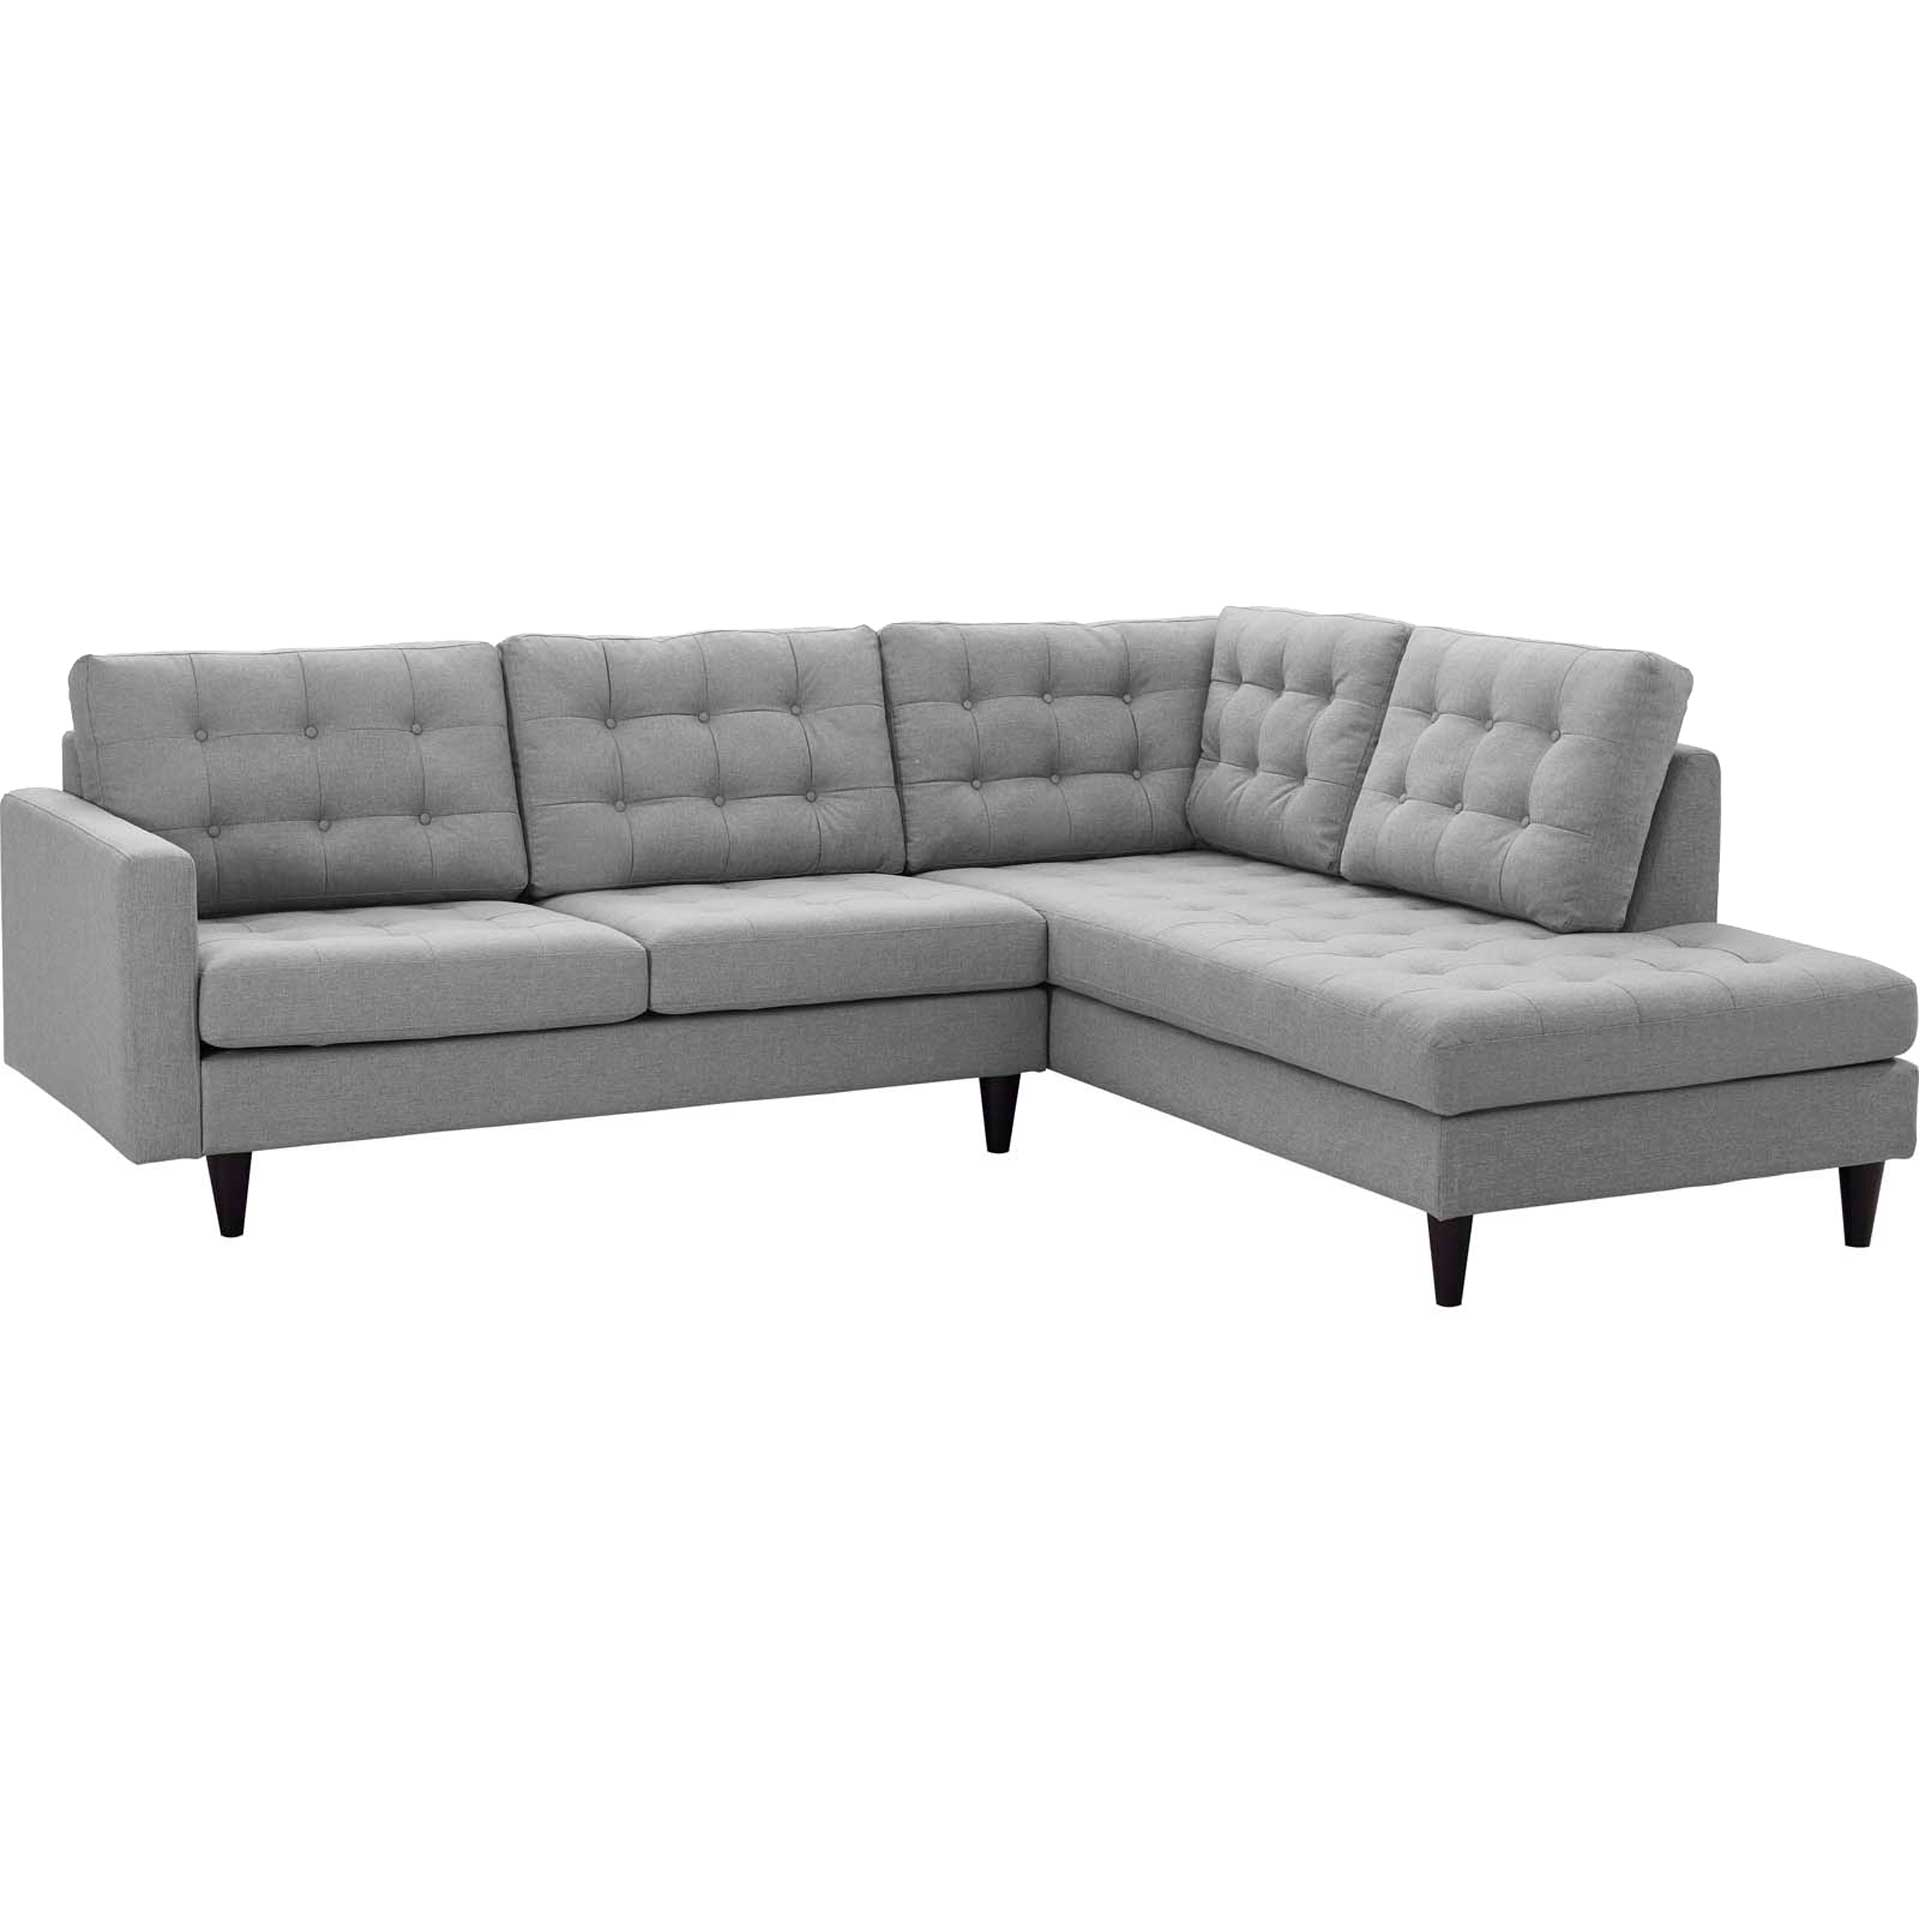 Era Upholstered Fabric Bumper Sectional Light Gray